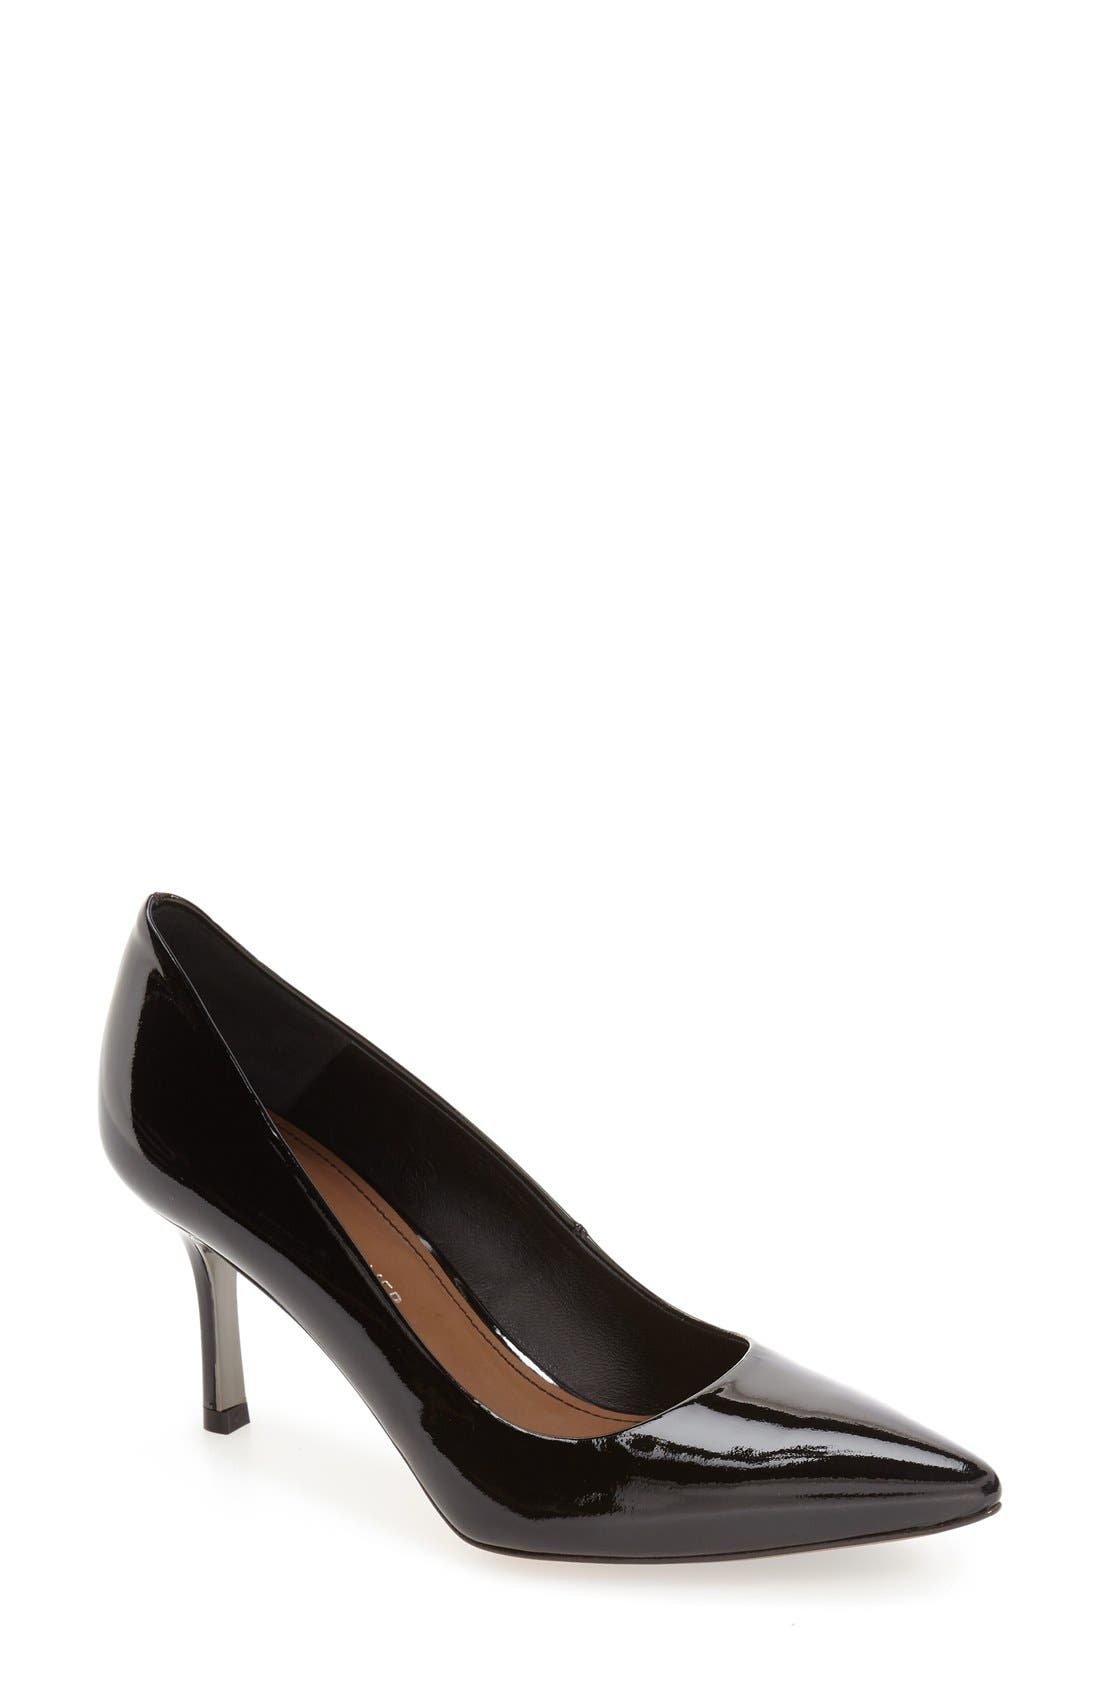 Main Image - Donald J Pliner 'Treva' Pointy Toe Pump (Women)